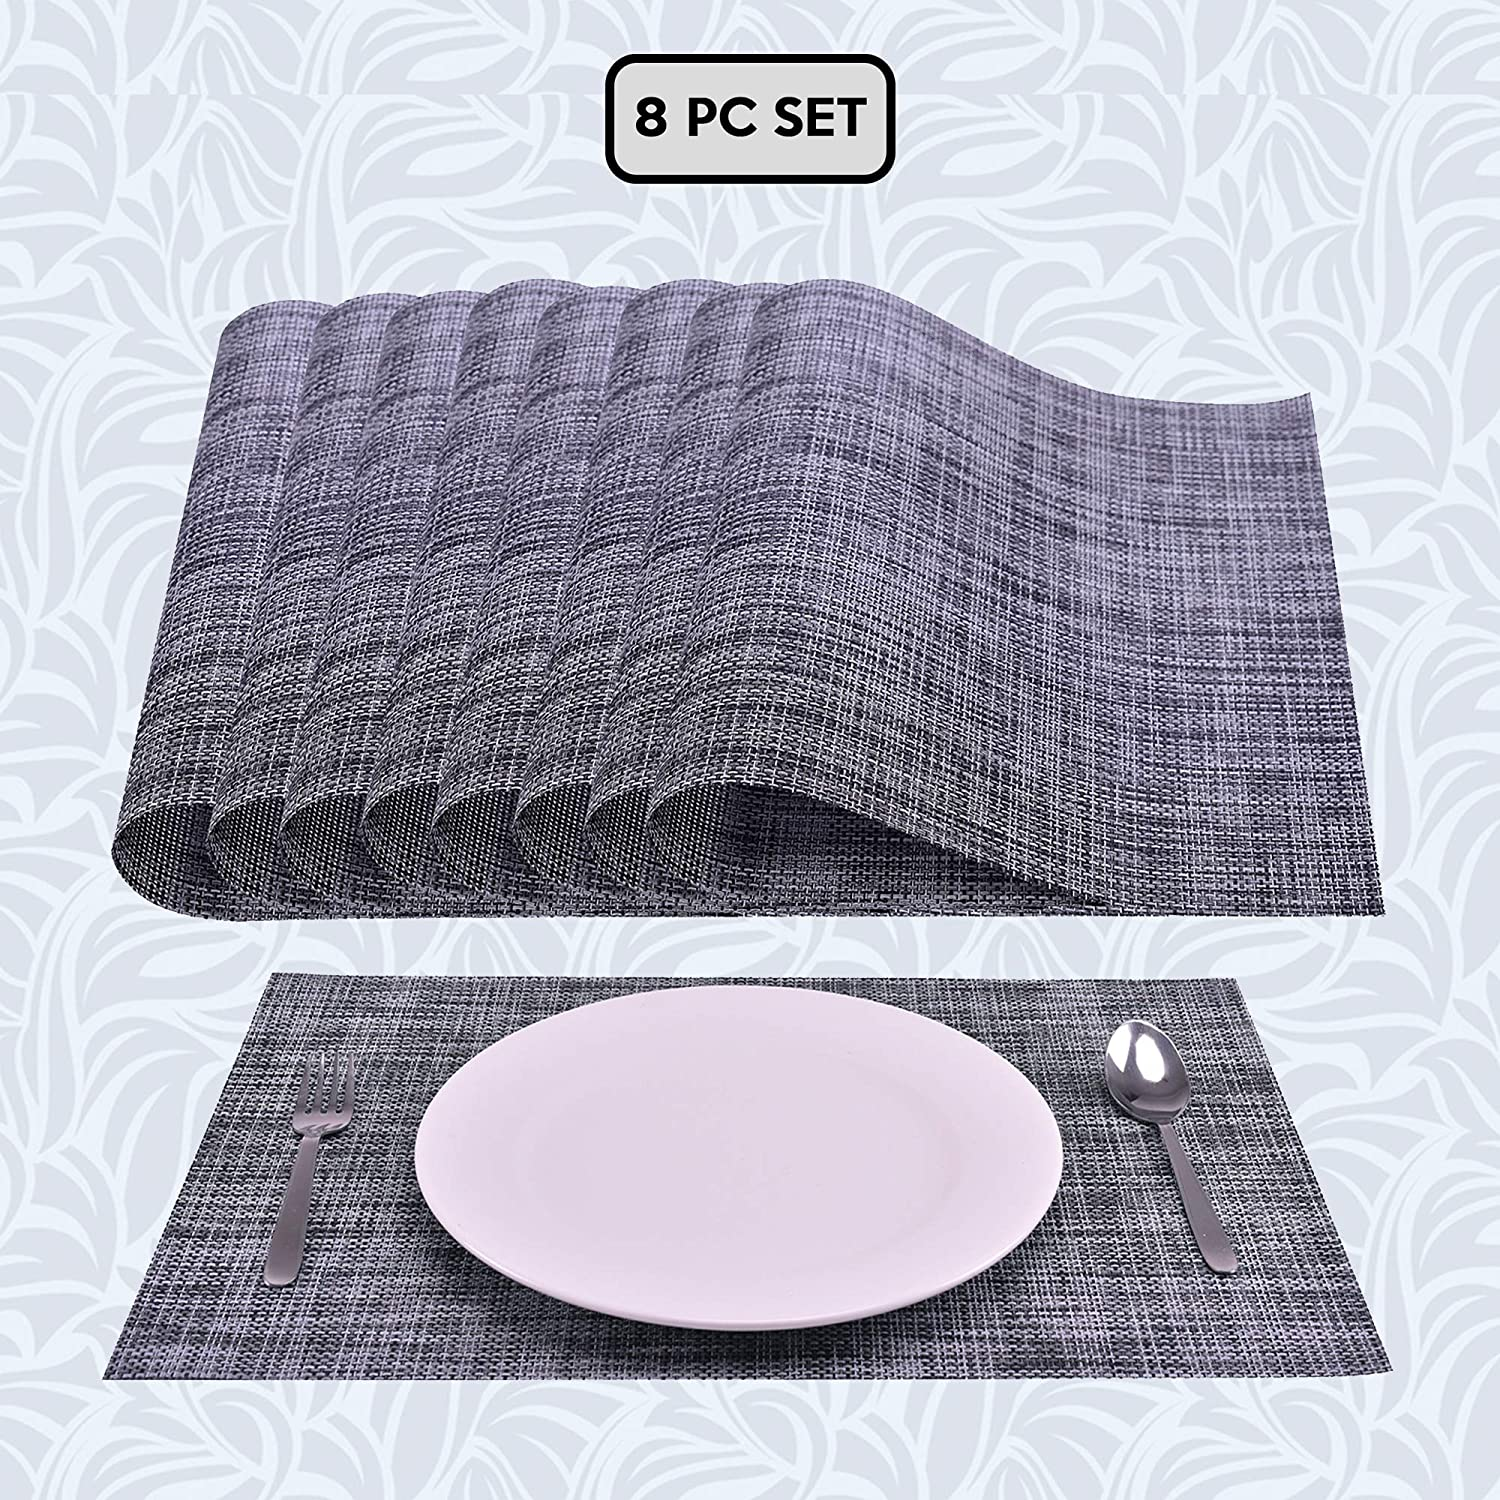 """Decozen PVC Placemats Set of 8 for Dining Table Coffee Table Kitchen Mats Heat Resistant Anti Skid Washable Easy to Clean Woven Vinyl Placemats in Reusable Pouch 18""""x12"""" - Grey"""